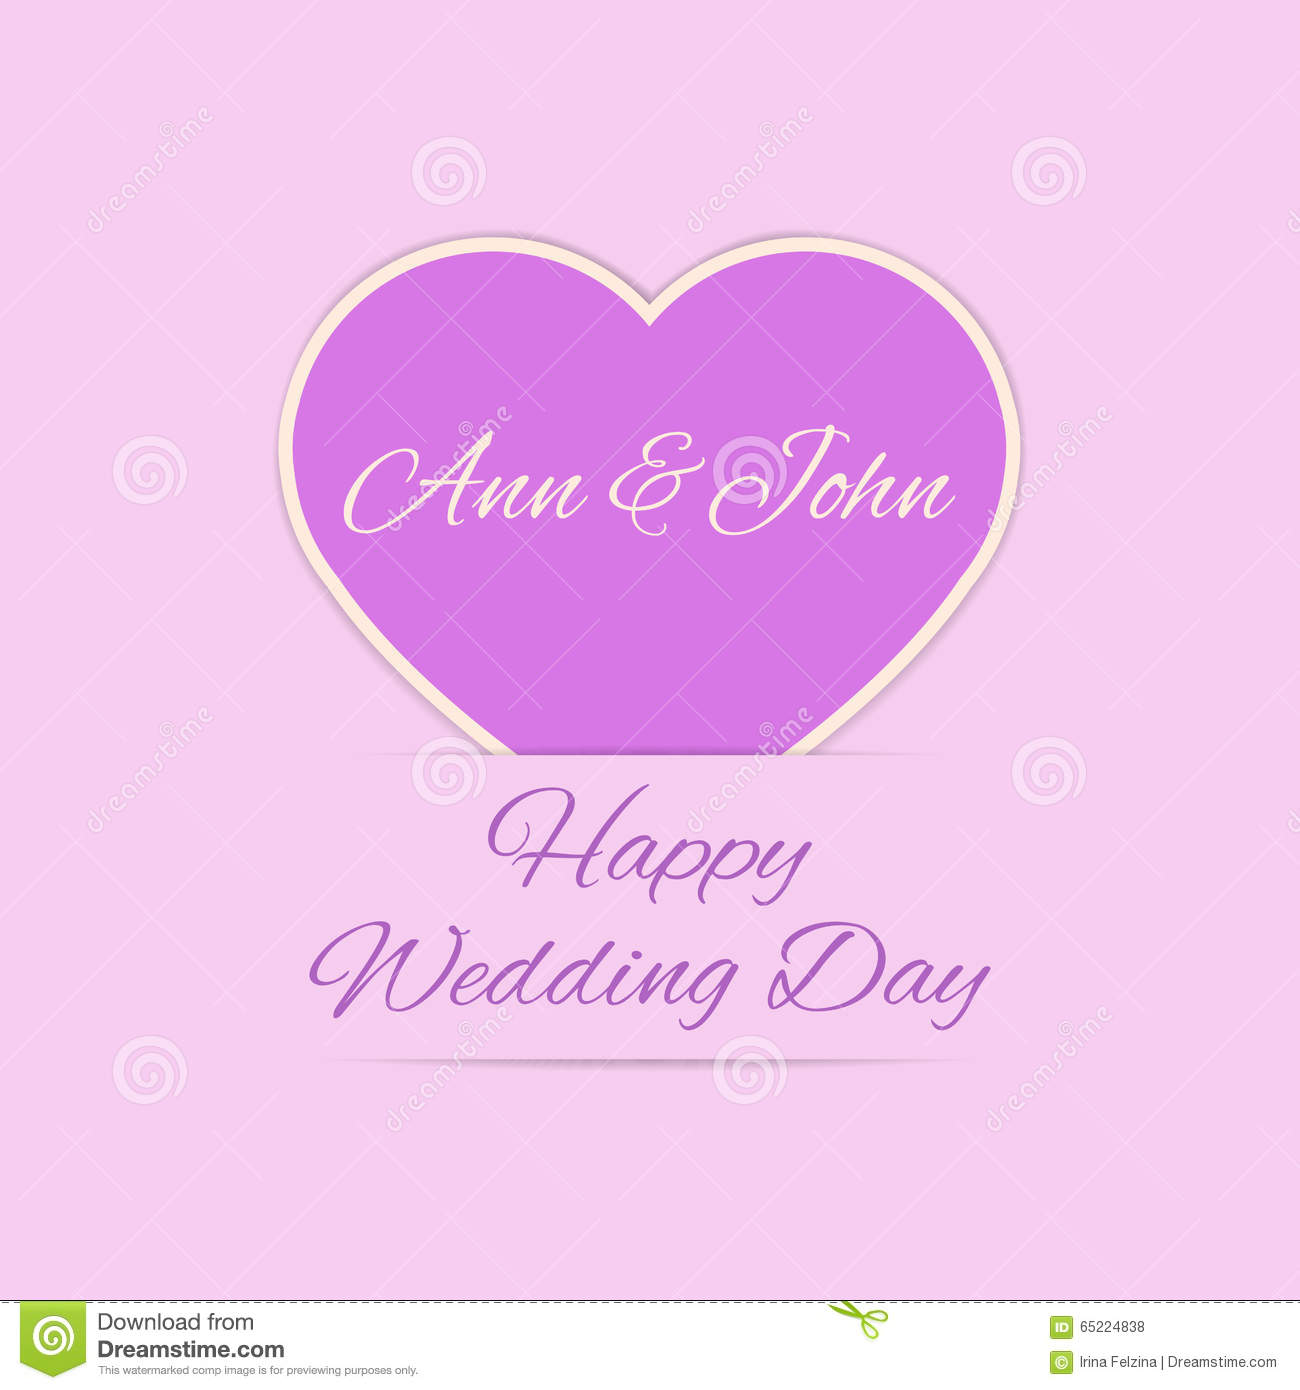 Wedding Day Images With Name: Wedding Day Card With Purple Heart Stock Vector